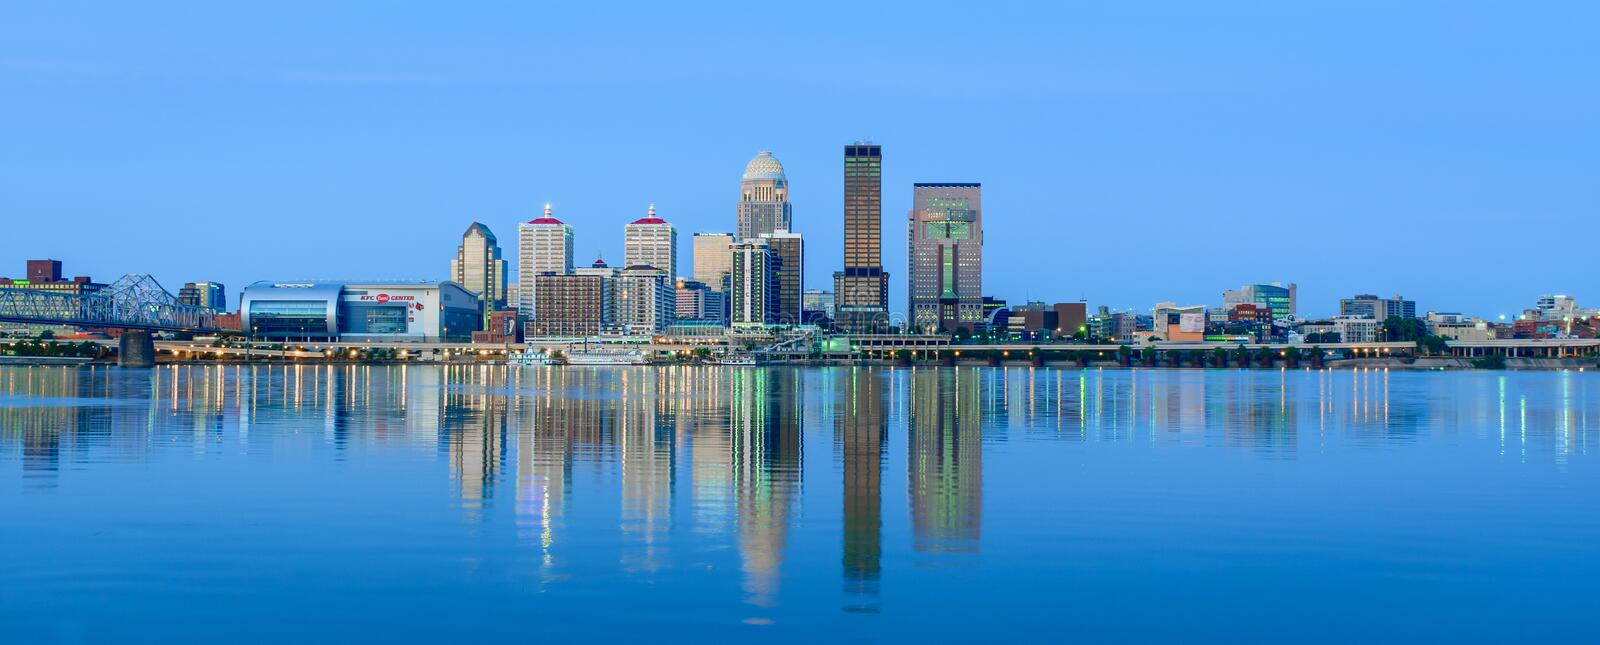 Skyline de Louisville Kentucky fotografia de stock royalty free